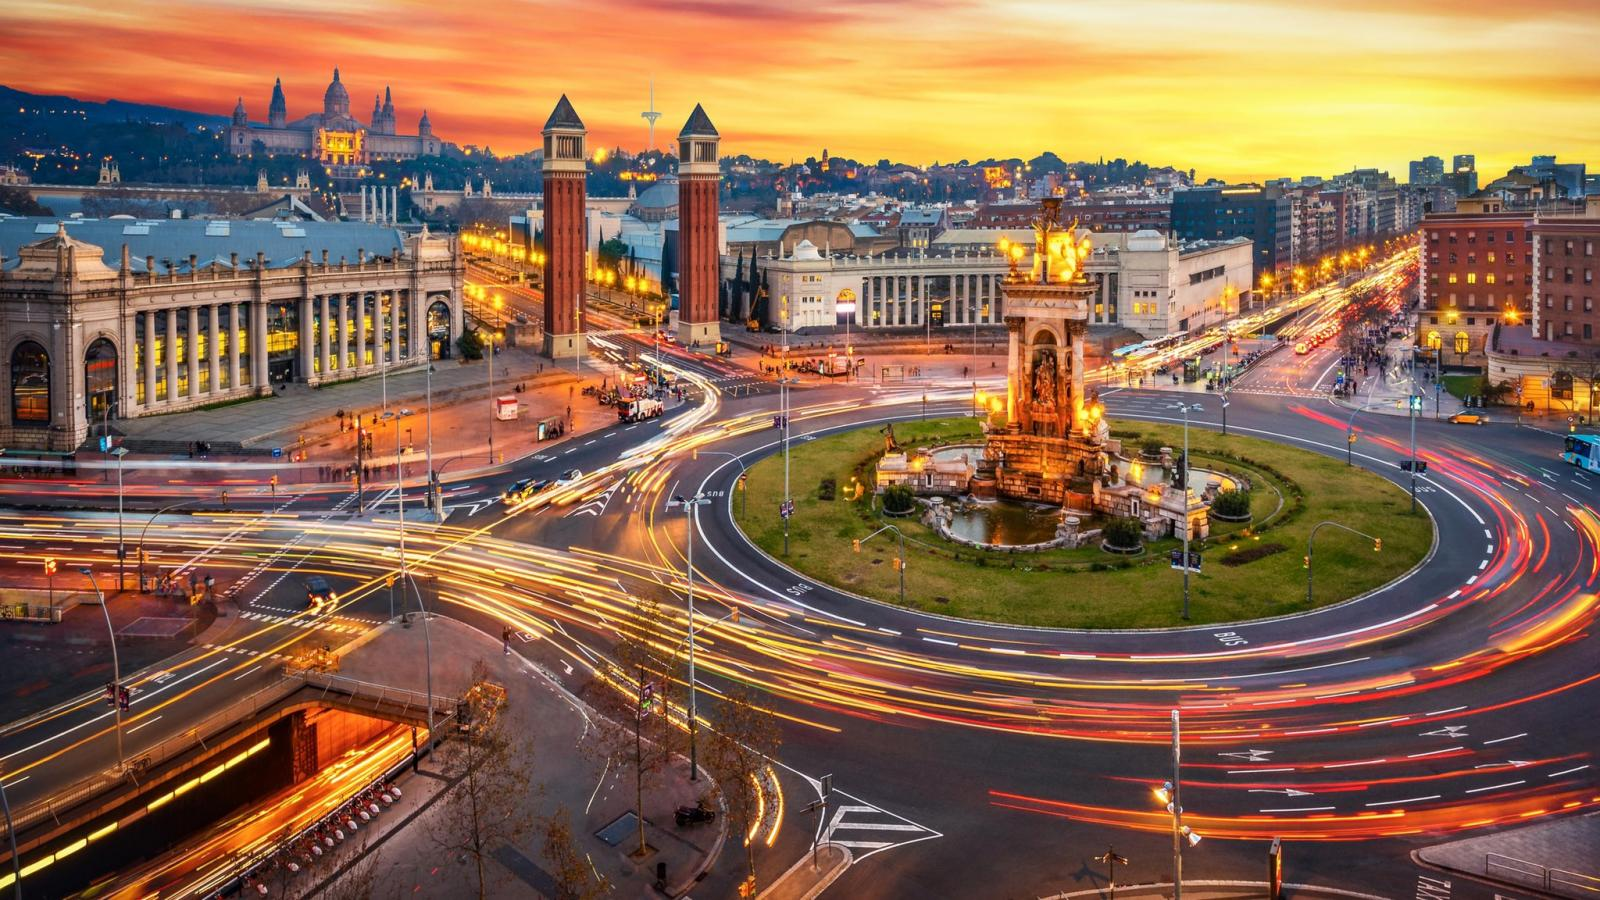 Qatar Airways Holidays launches holiday packages to Spain